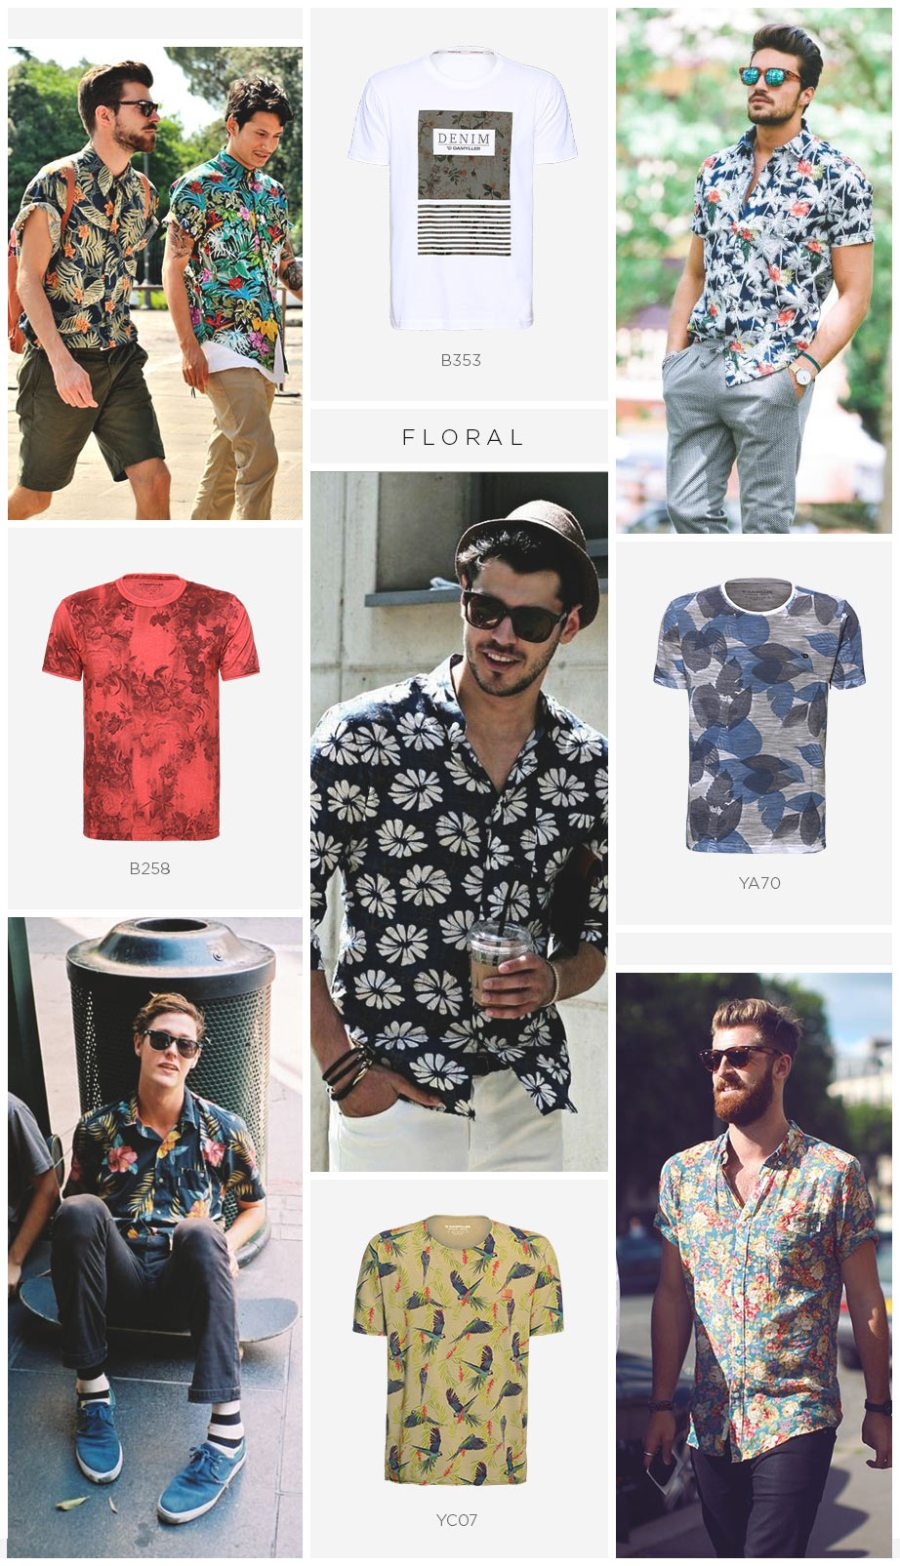 camiseta floral masculina street style